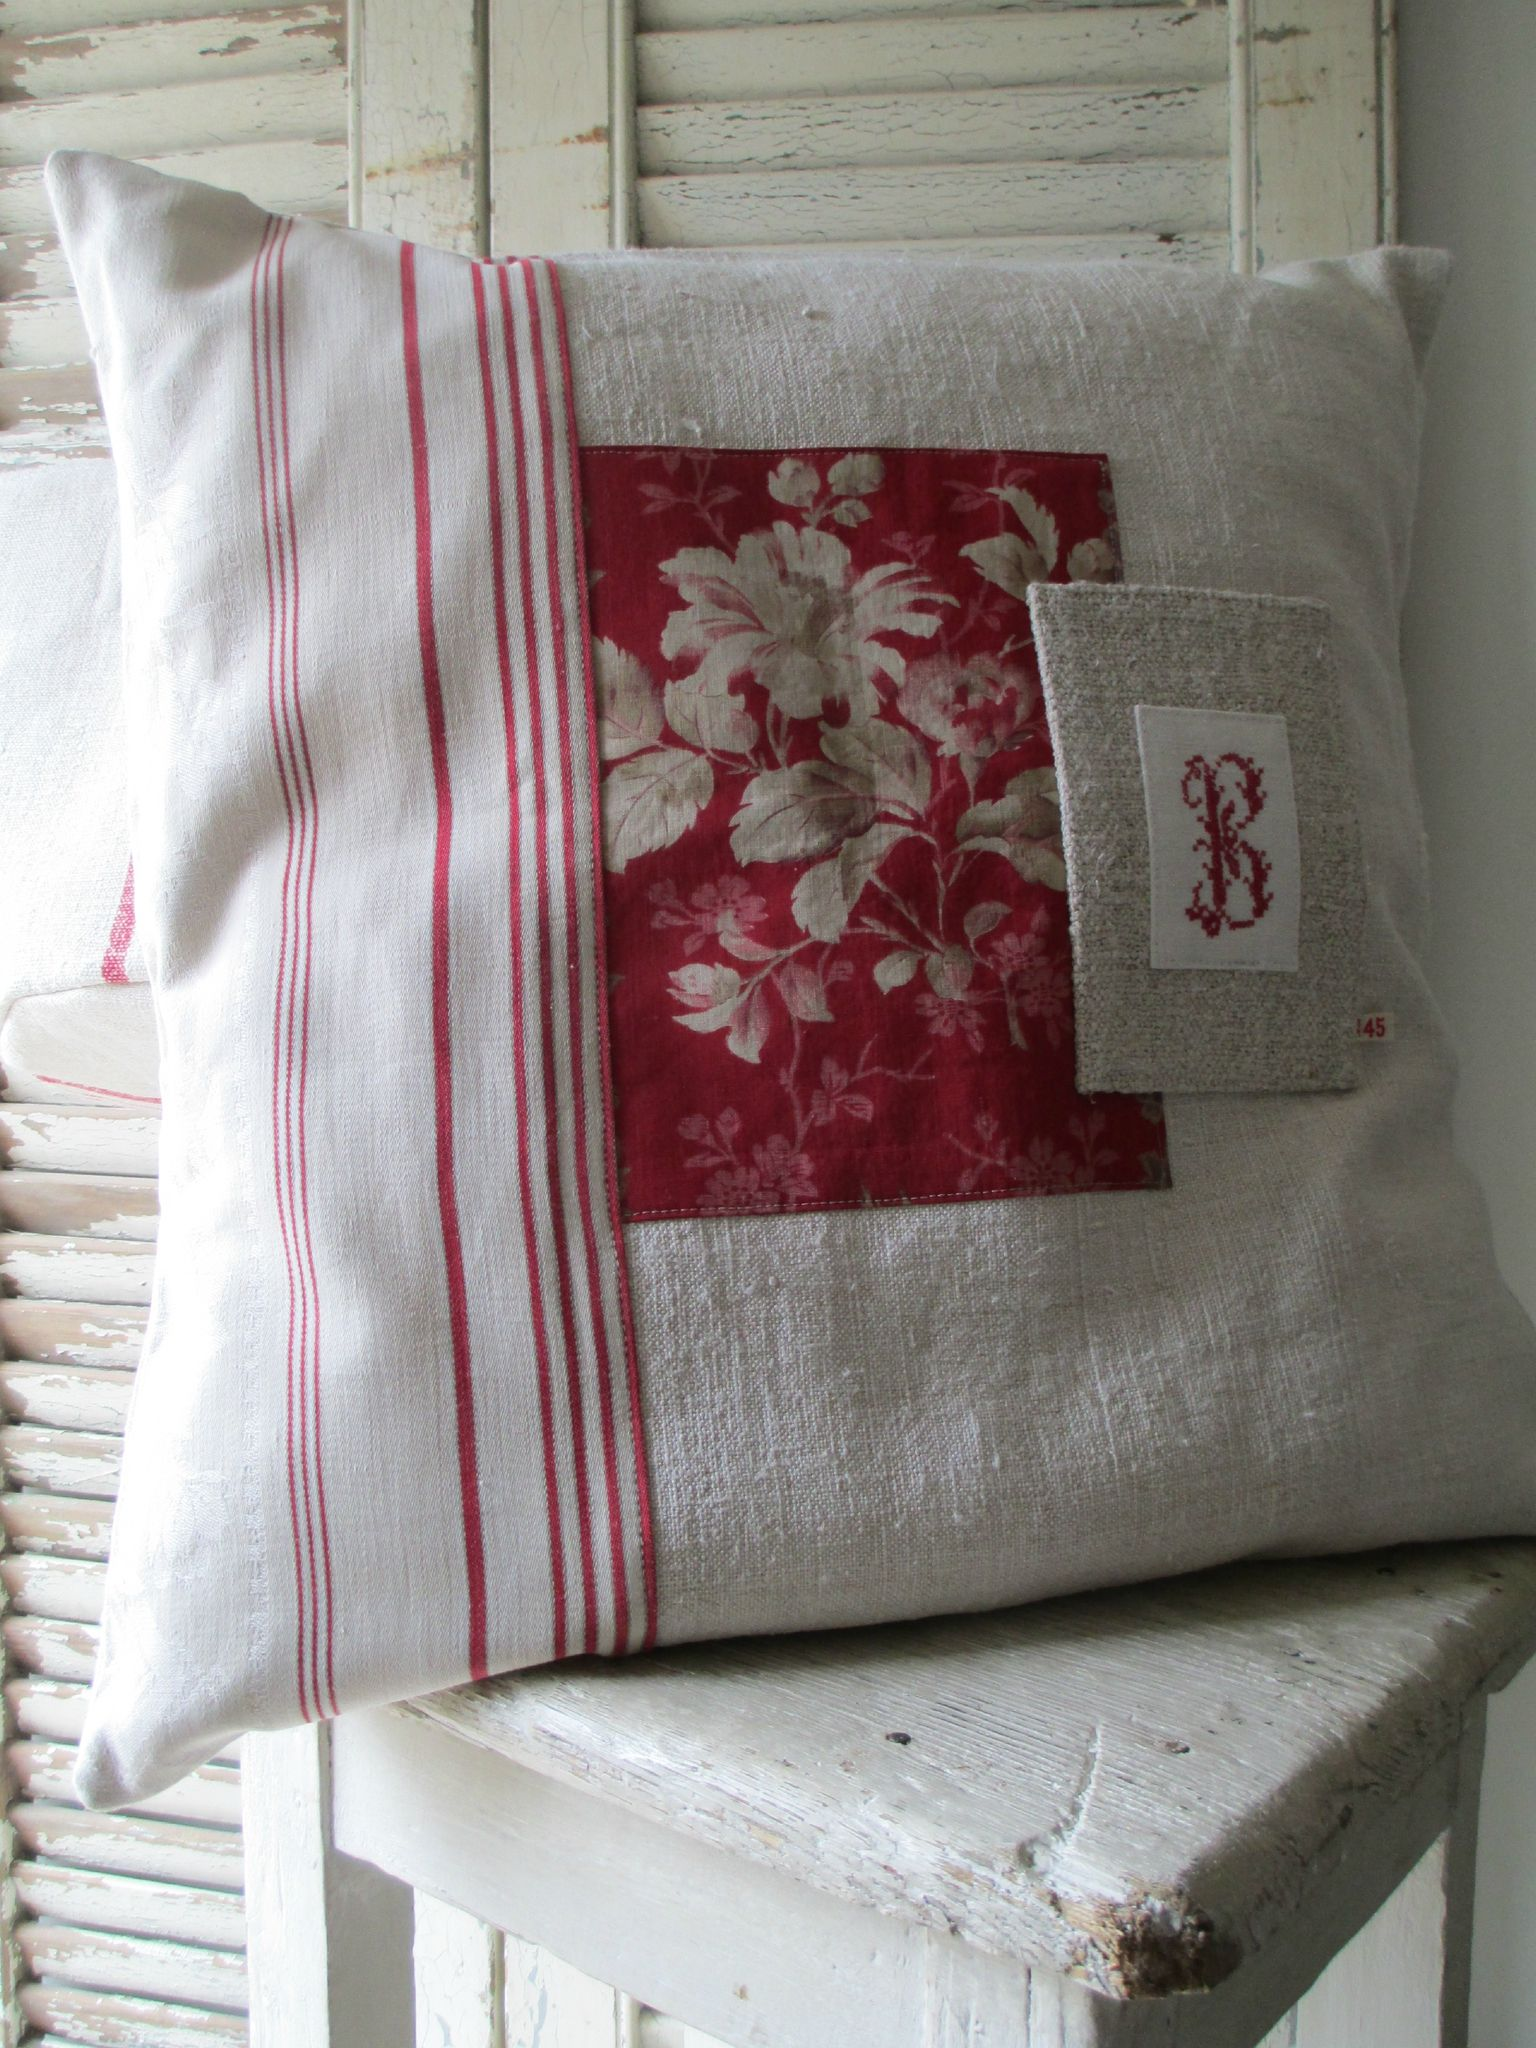 Coussin De Rembourrage Patchwork Pillow Cover With Embroidered Monogram #sewing